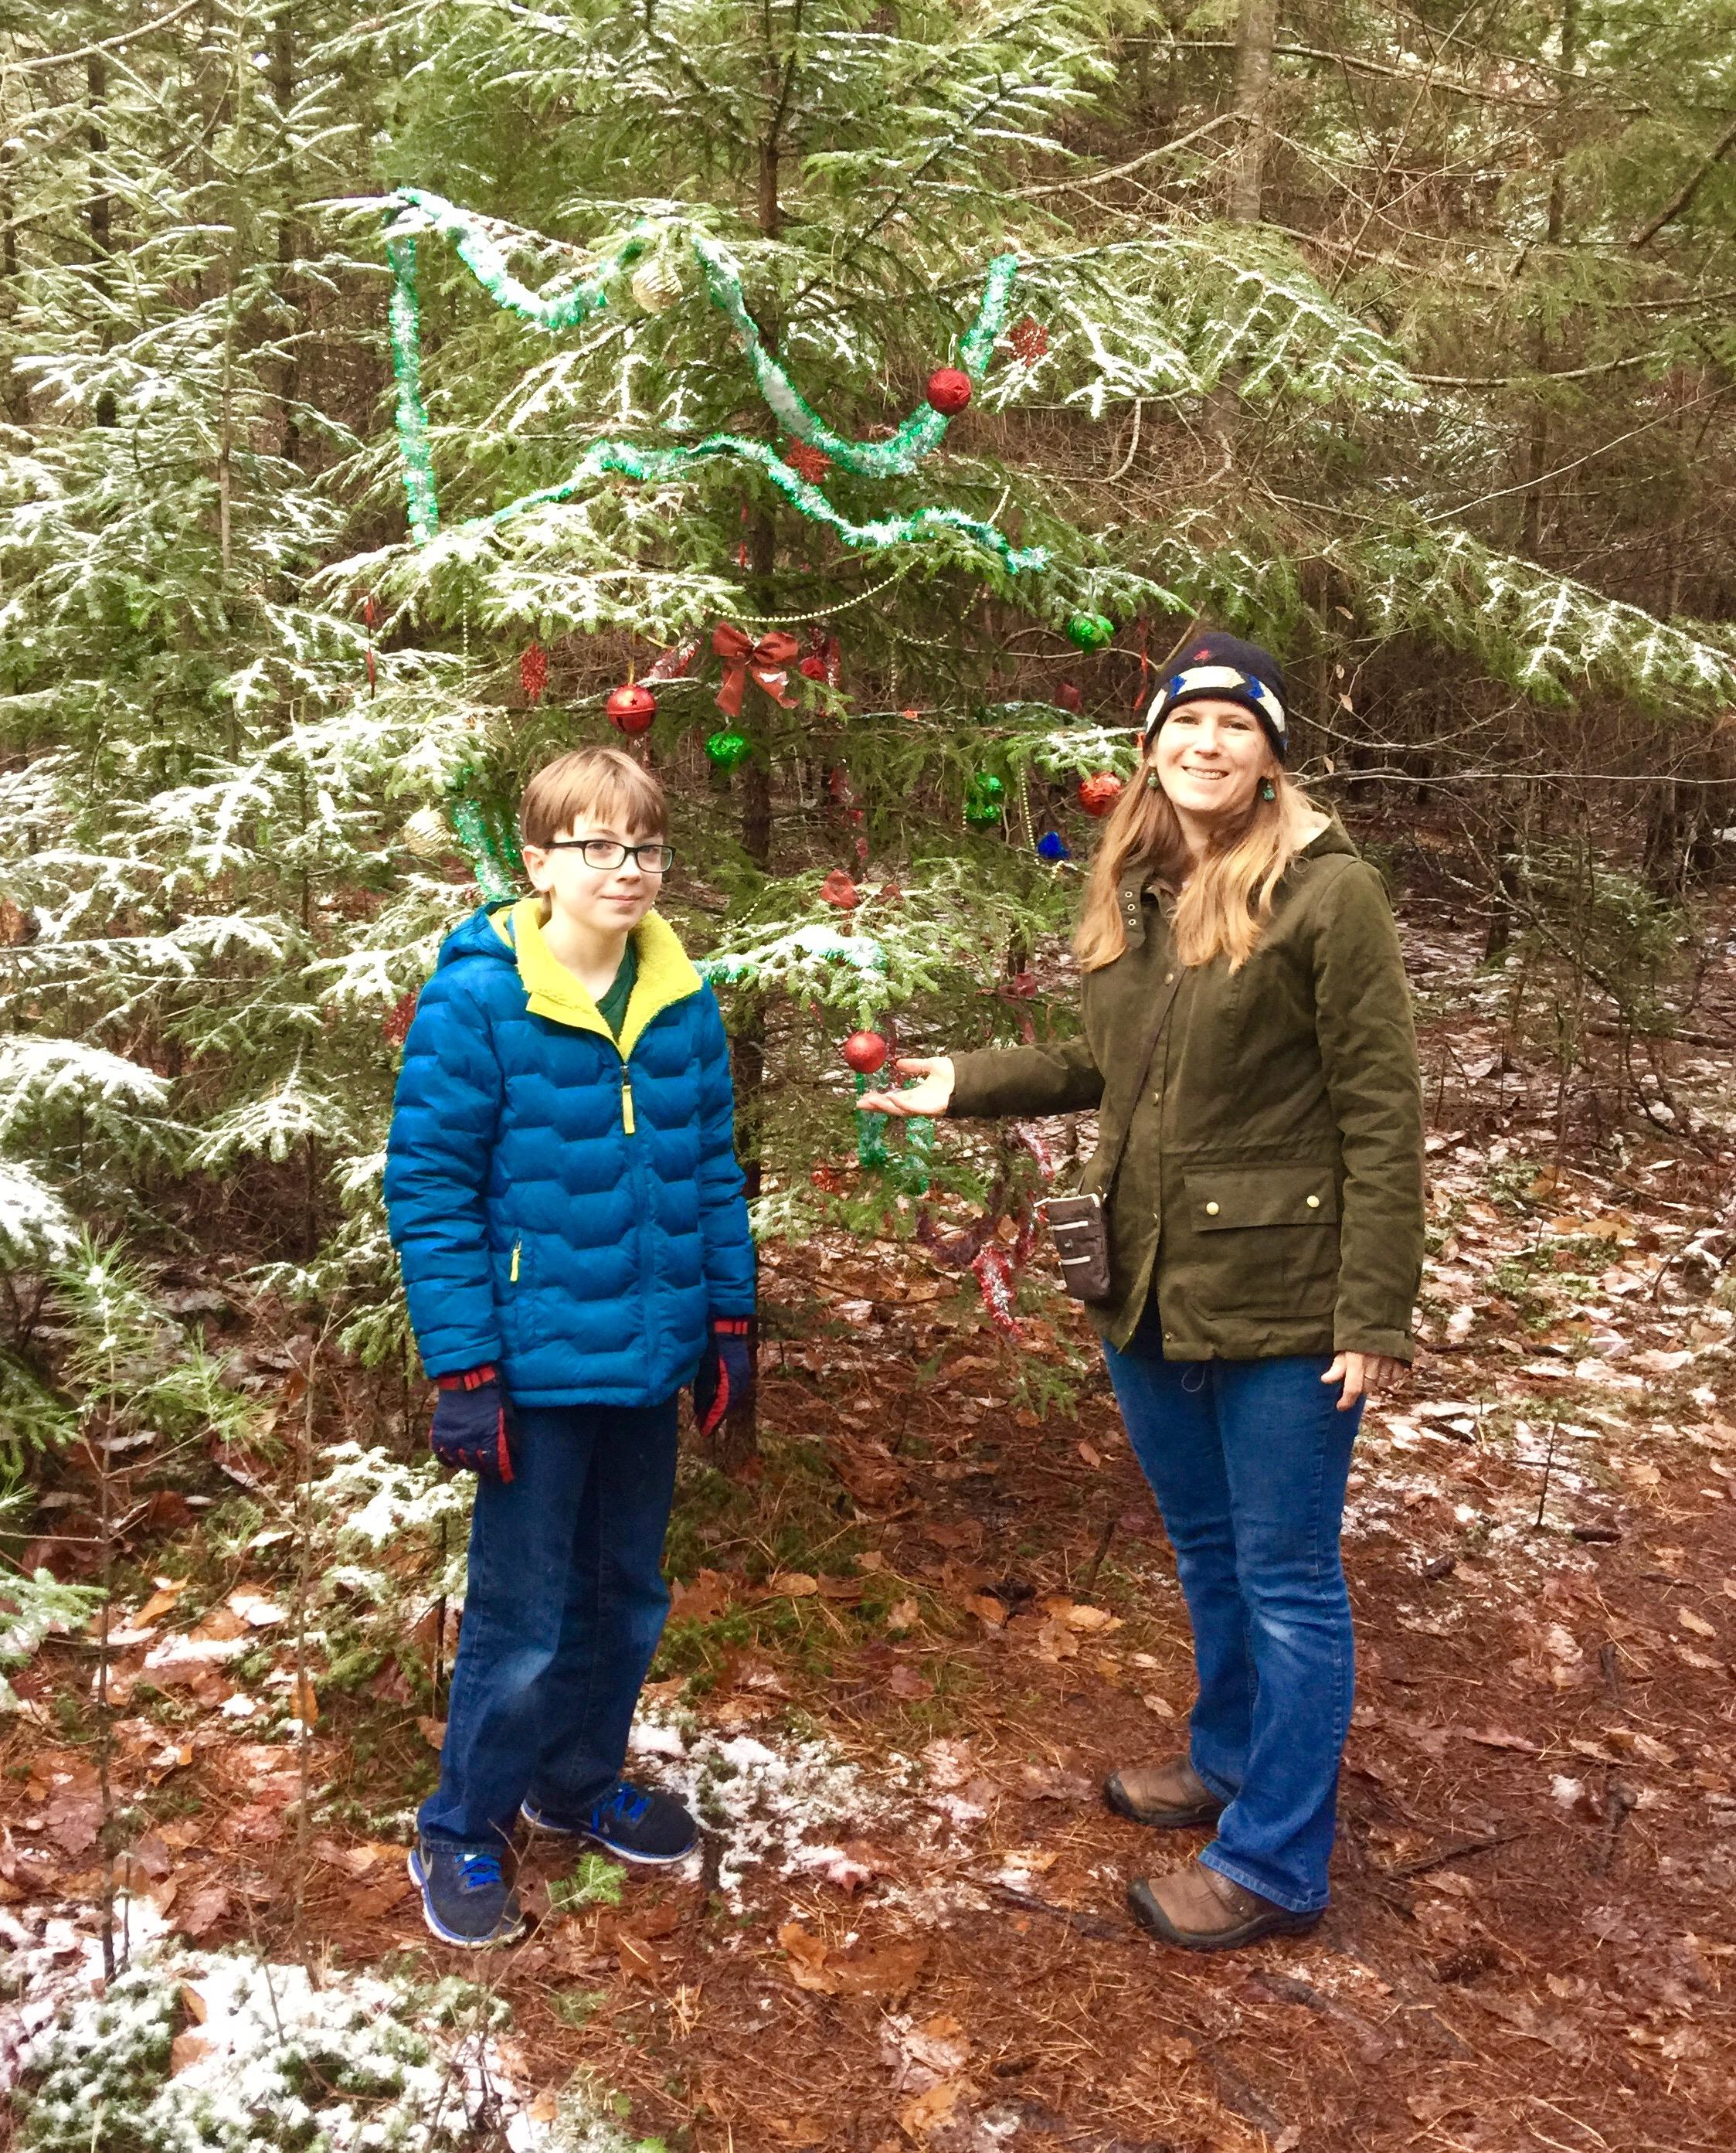 People Decorating A Christmas Tree in new hampshire, decorating christmas trees in the woods is a